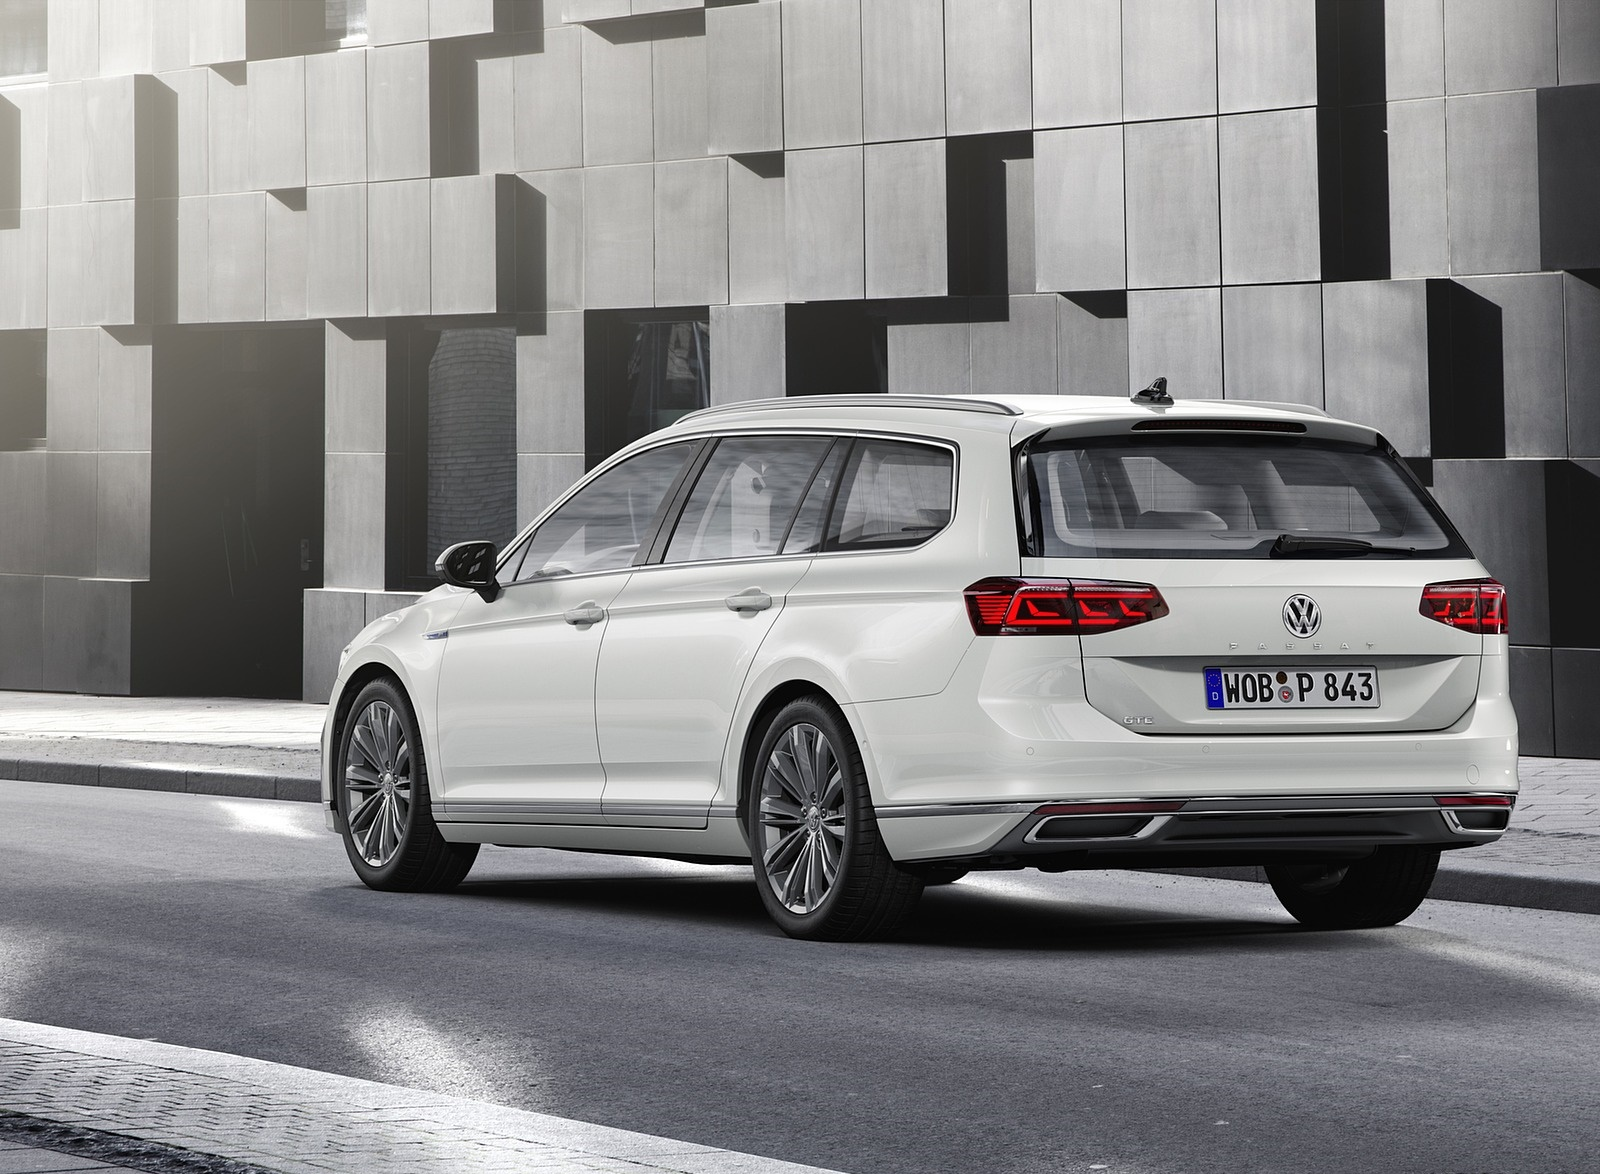 2020 Volkswagen Passat GTE Variant (EU-Spec) Rear Three-Quarter Wallpapers (5)